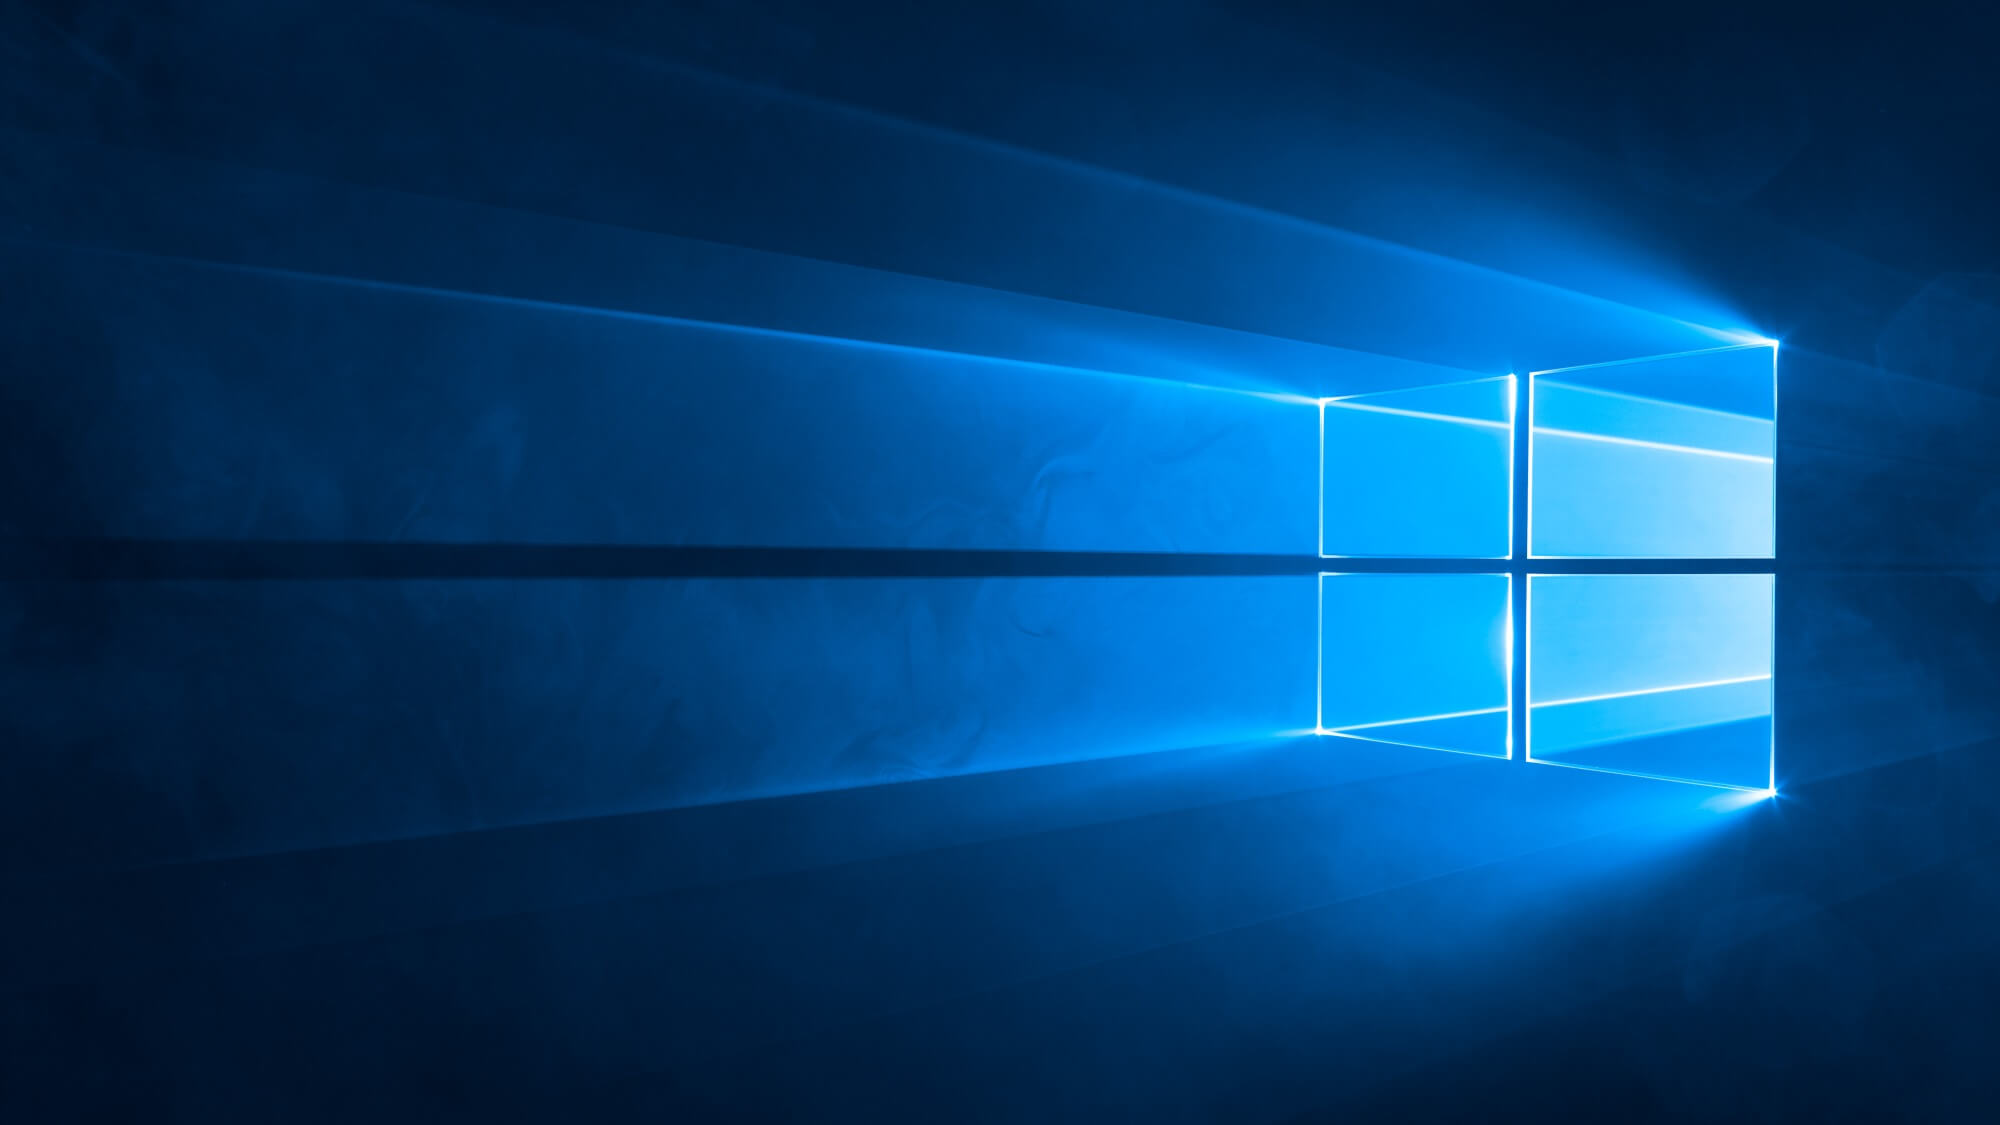 Microsoft releases new Windows 10 preview with more proactive Windows Update